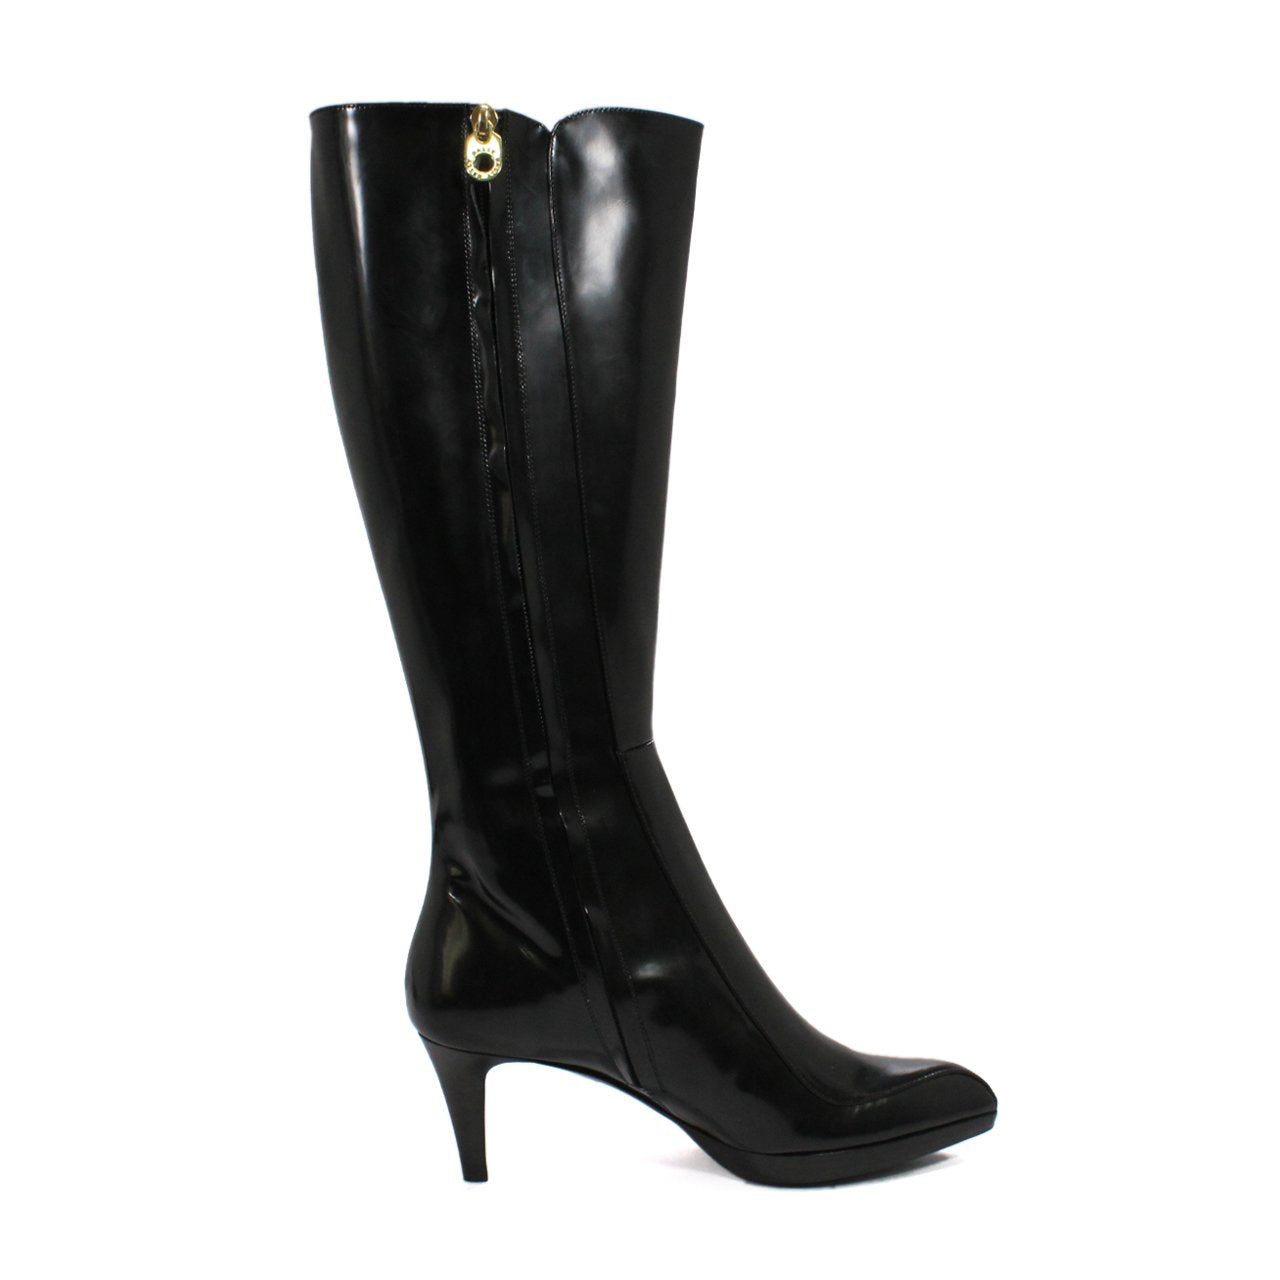 Bally Darmenia Pointed Heel Boots In Glossy Calfskin Black Leather